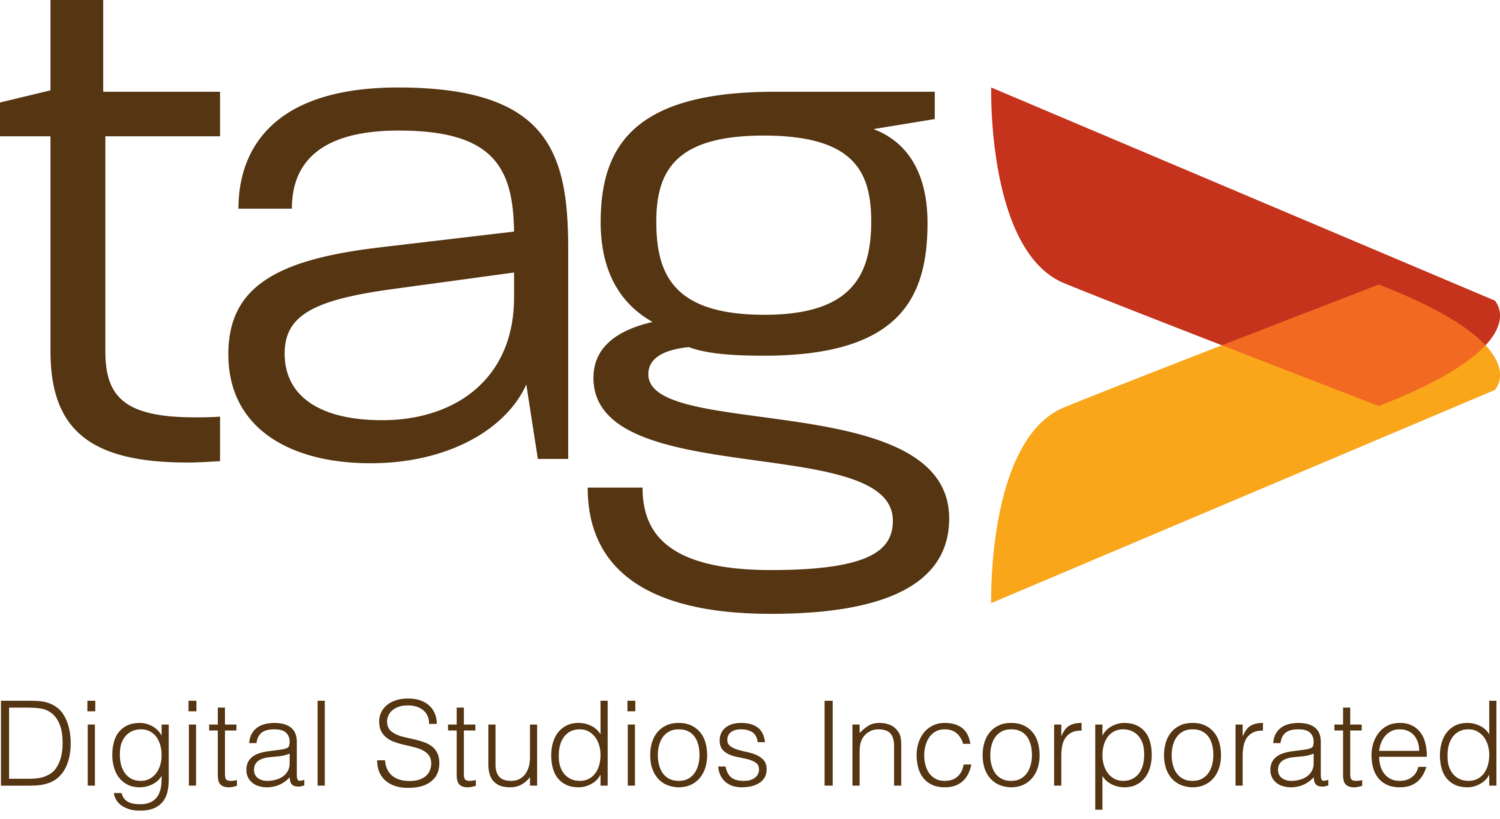 Tag Digital Studios Inc.